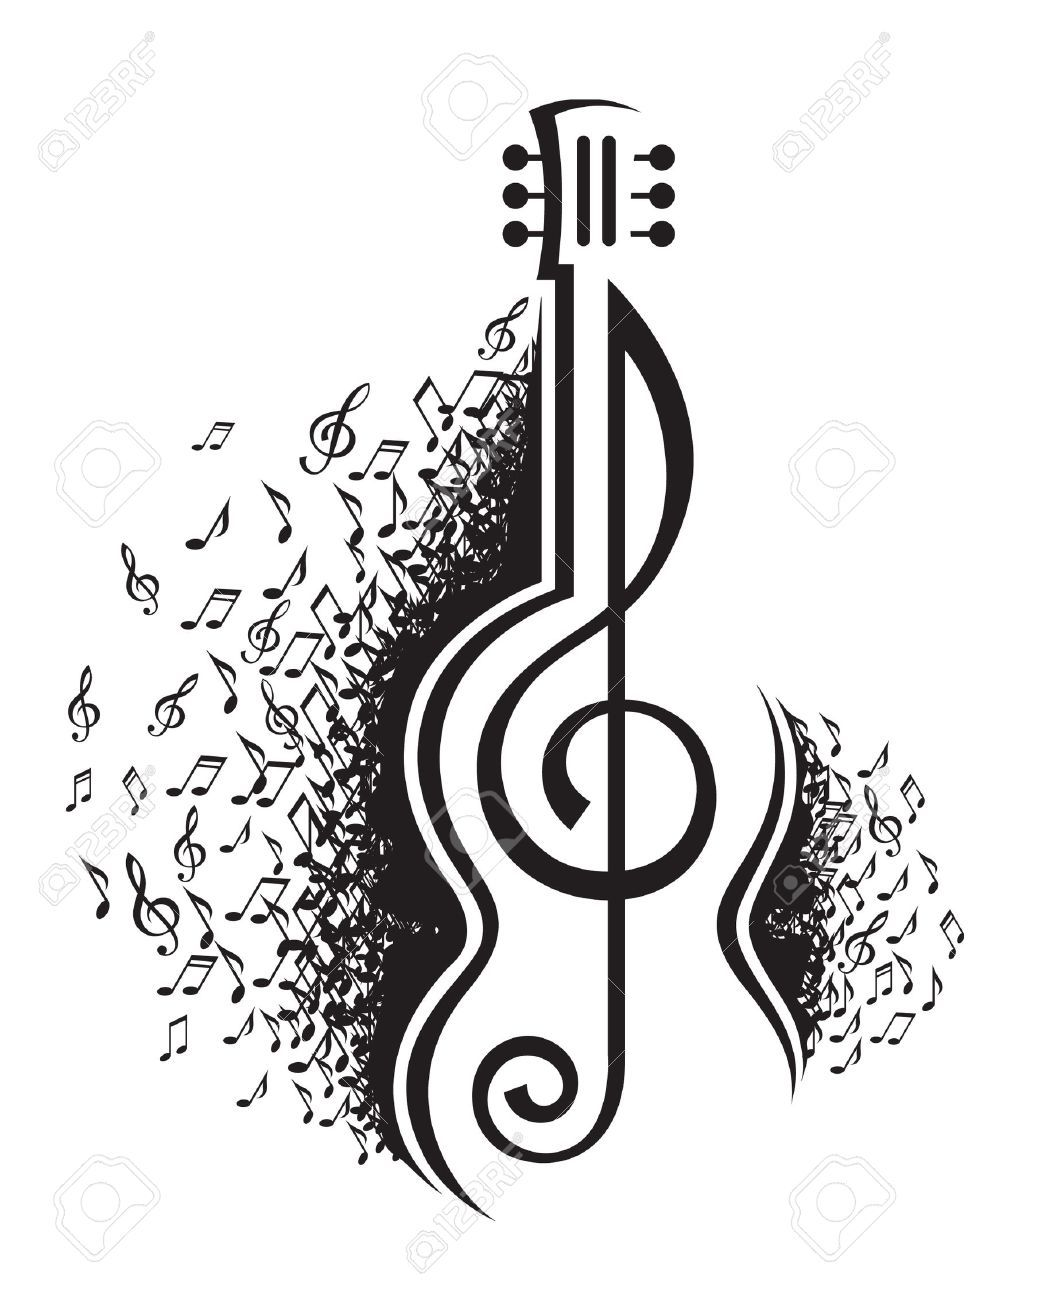 Image Result For Music Note Guitar Music Notes Art Music Notes Drawing Music Notes Tattoo